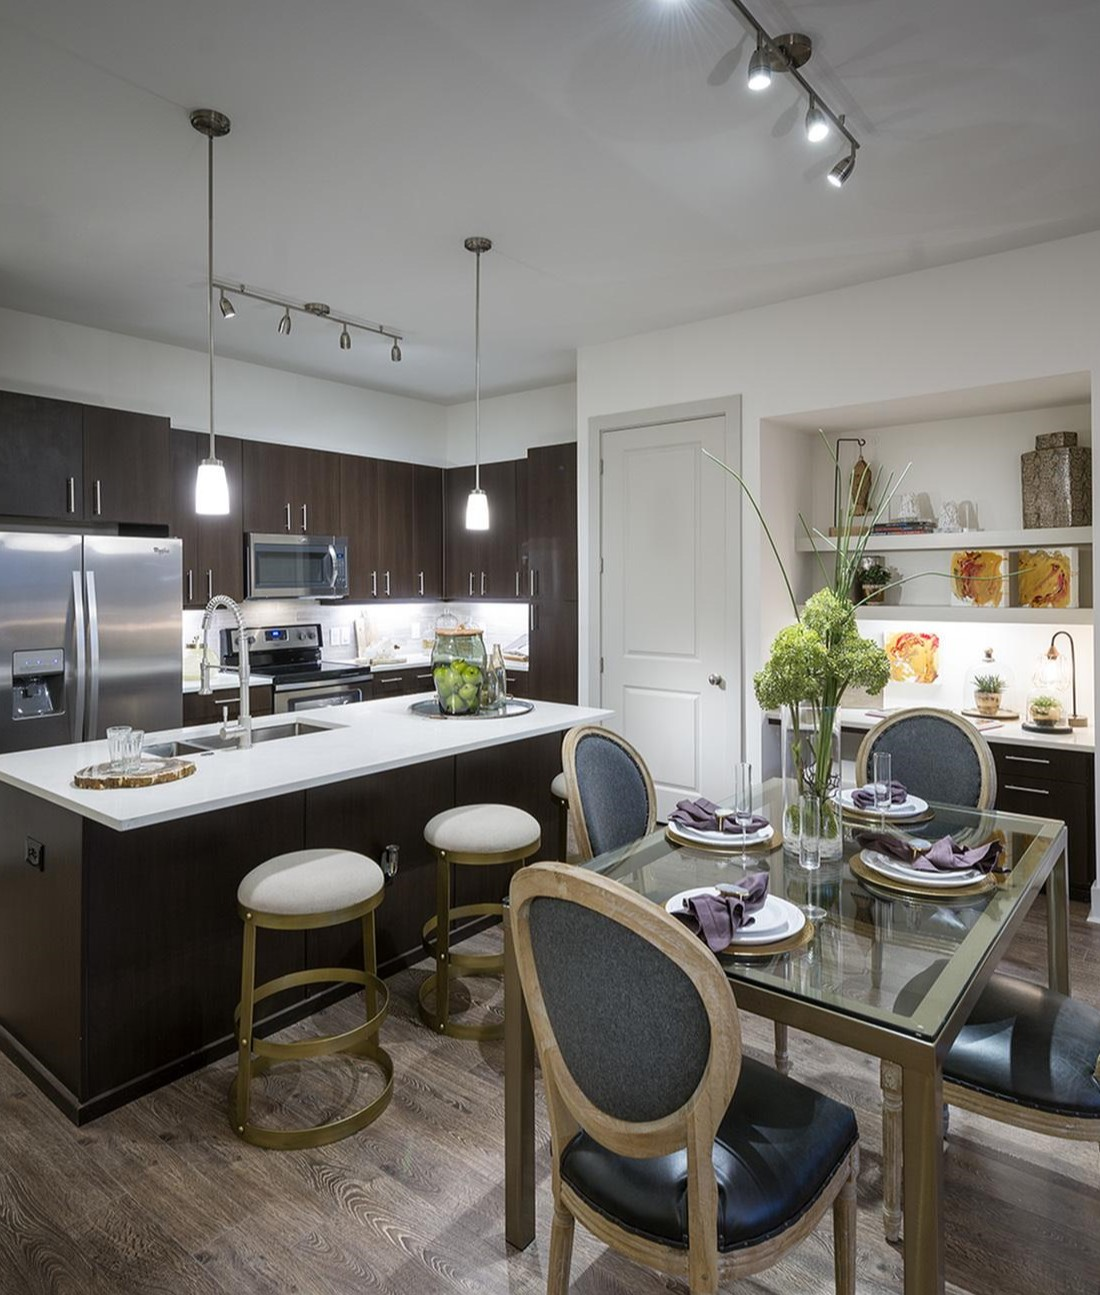 Kitchen with Backsplash Accents at Hanover West Peachtree Apartments in Atlanta, GA